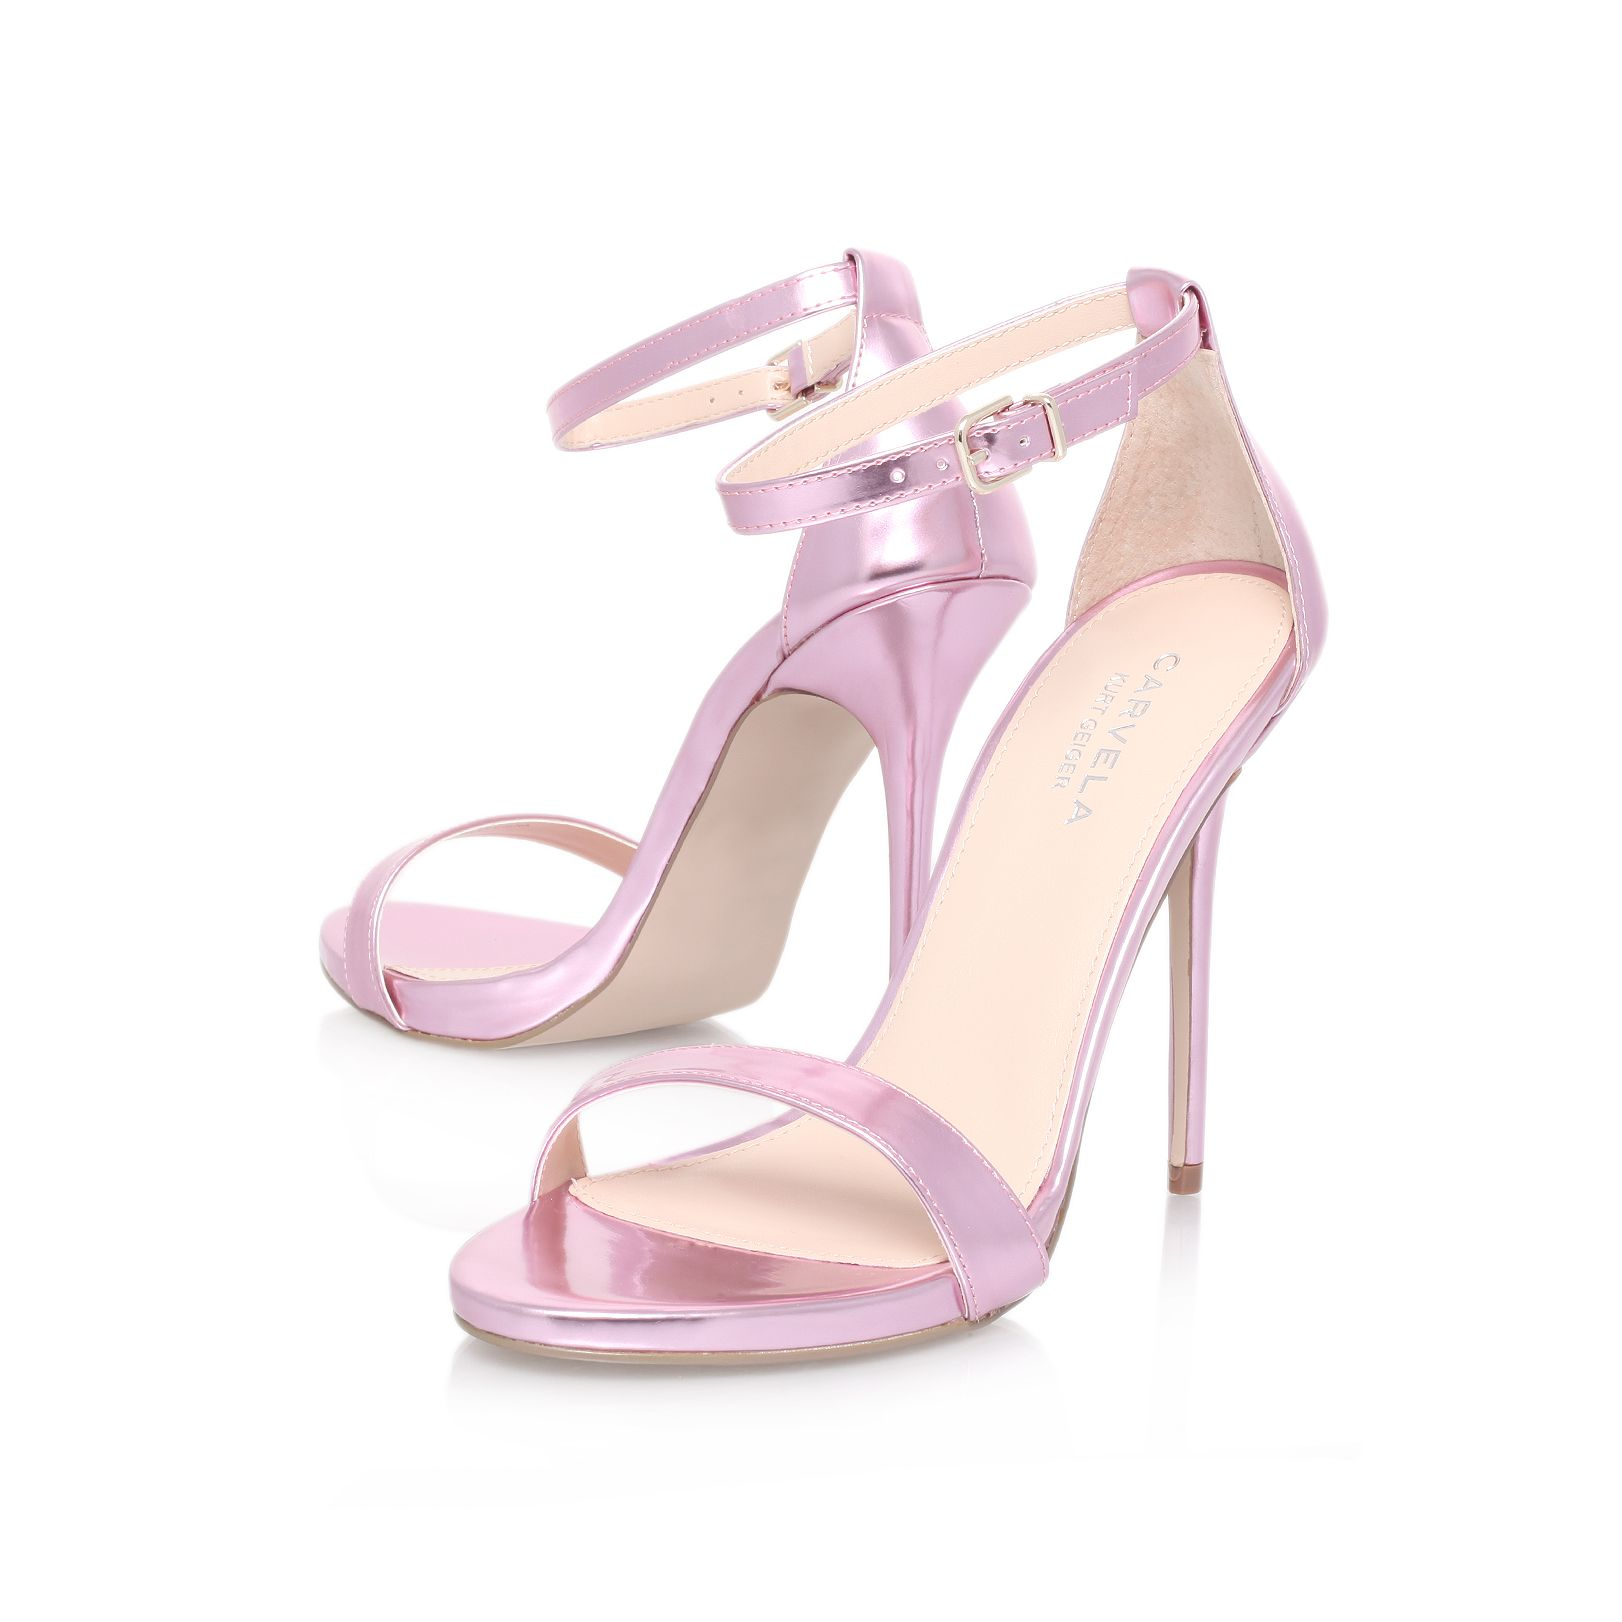 Glacier high heel sandals